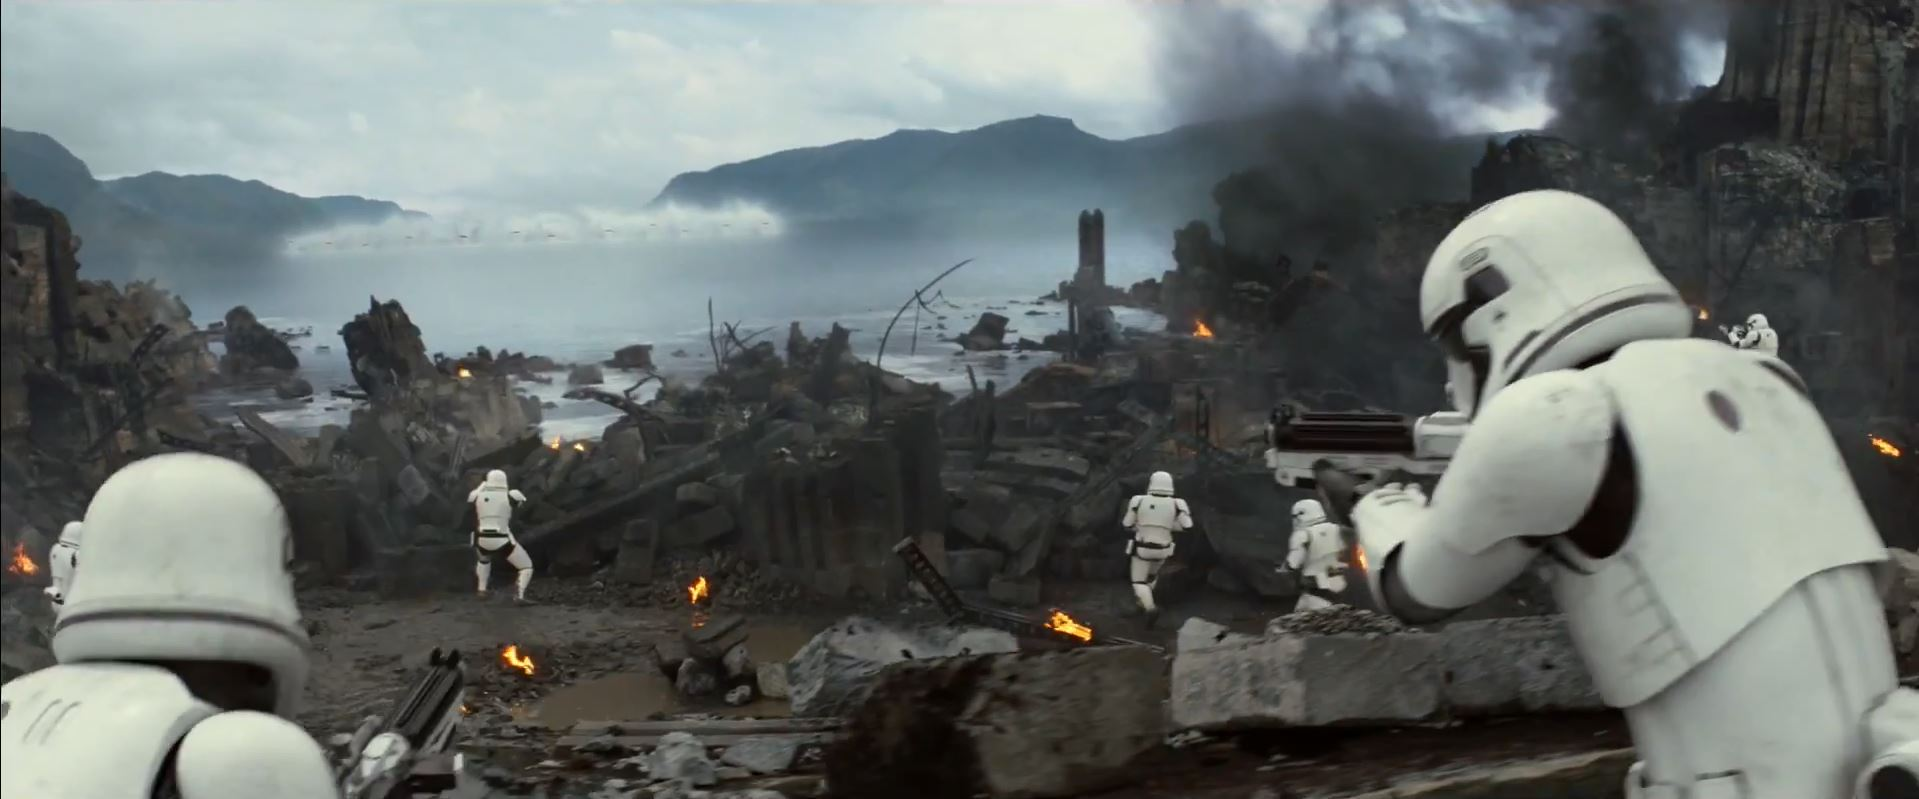 Storm Troopers take up position from X-wing assault